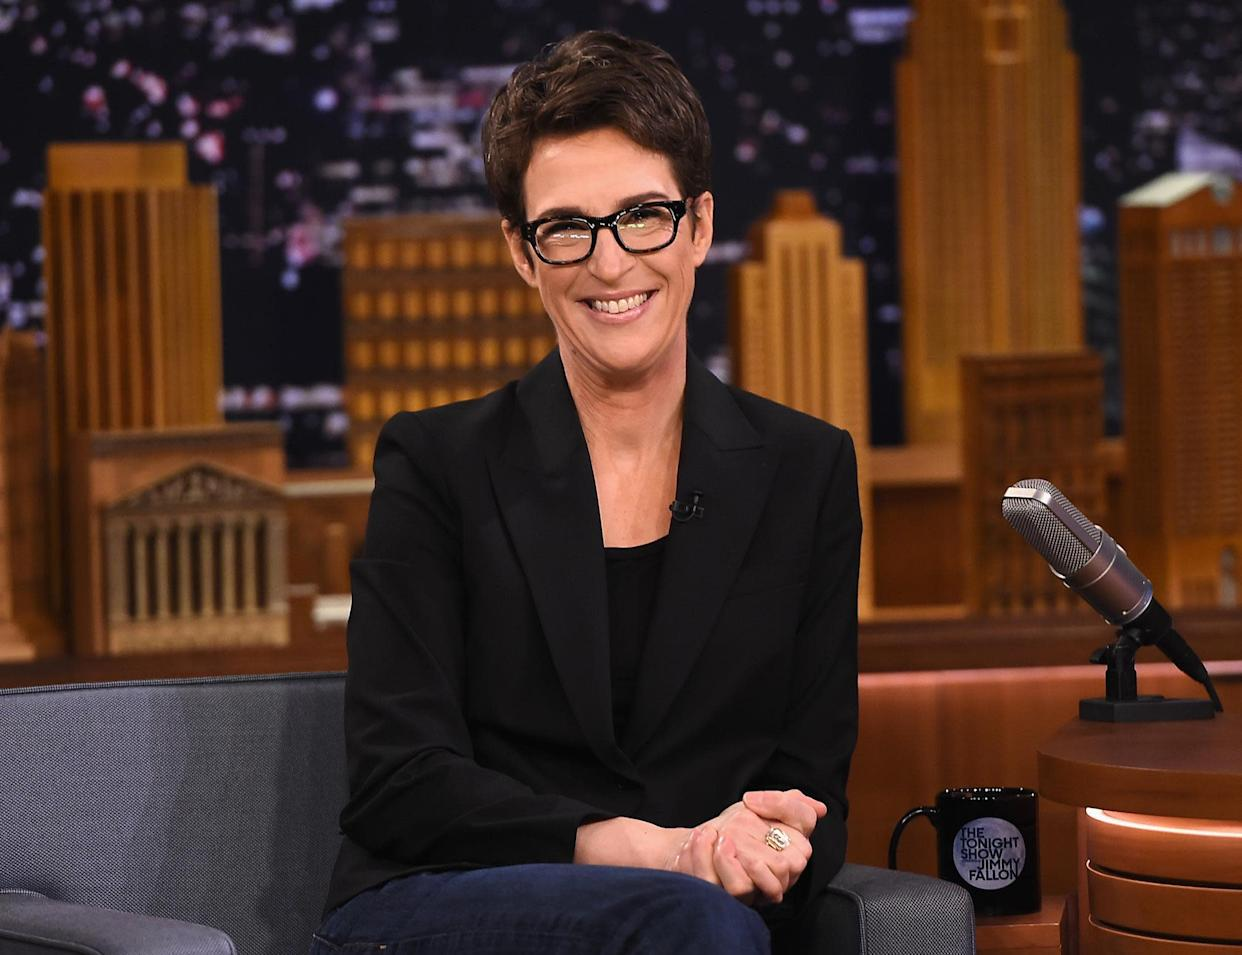 """Rachel Maddow Visits """"The Tonight Show Starring Jimmy Fallon"""" at Rockefeller Center: Getty Images for NBC"""